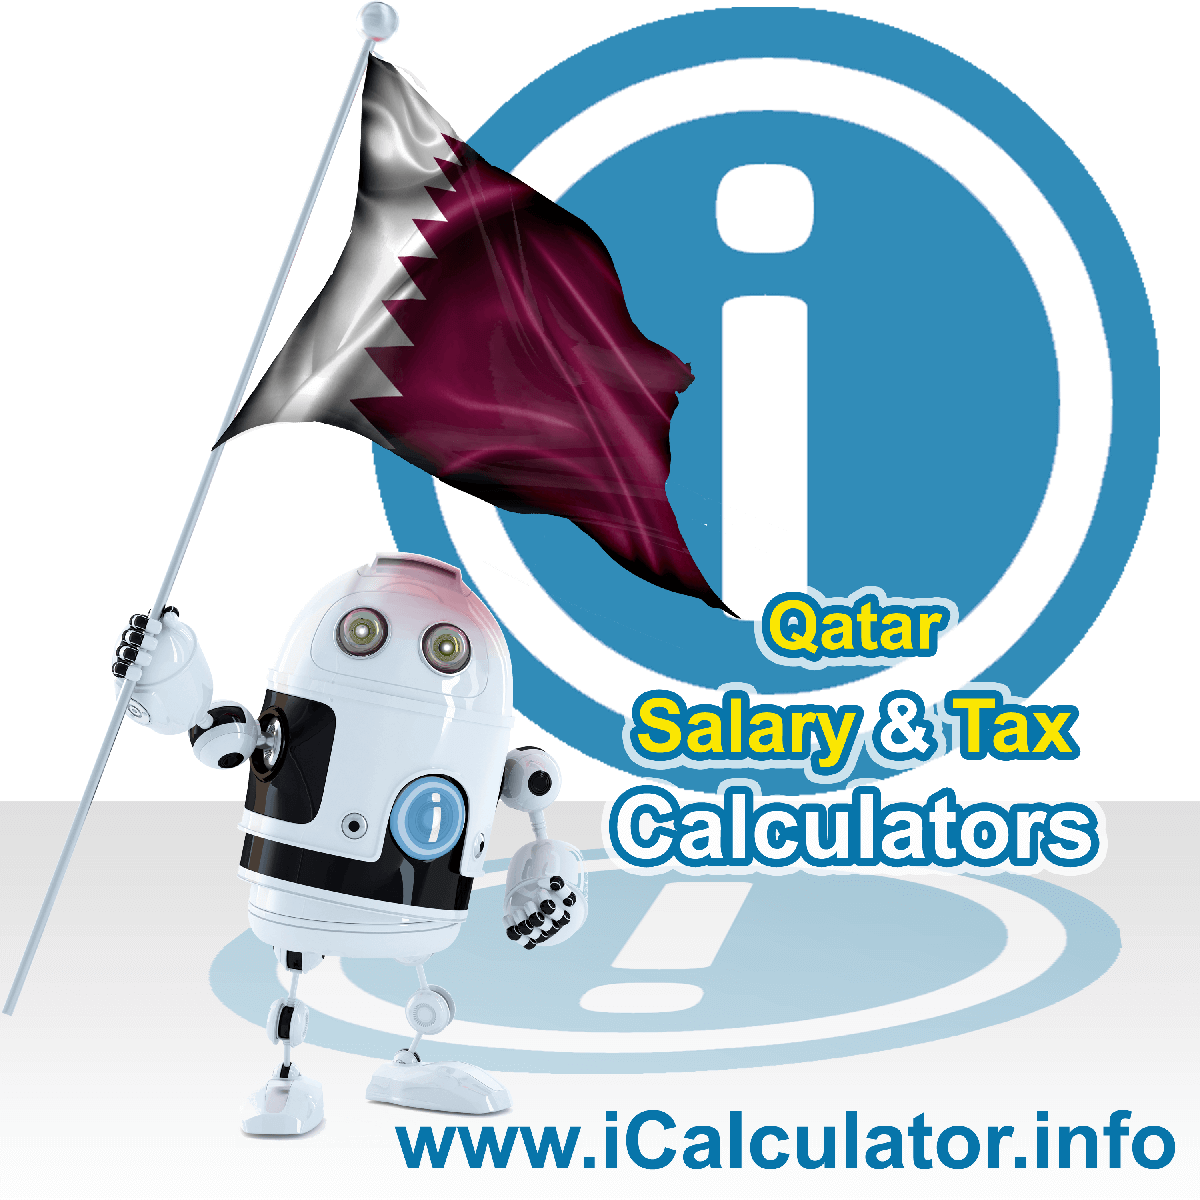 Qatar Tax Calculator. This image shows the Qatar flag and information relating to the tax formula for the Qatar Salary Calculator